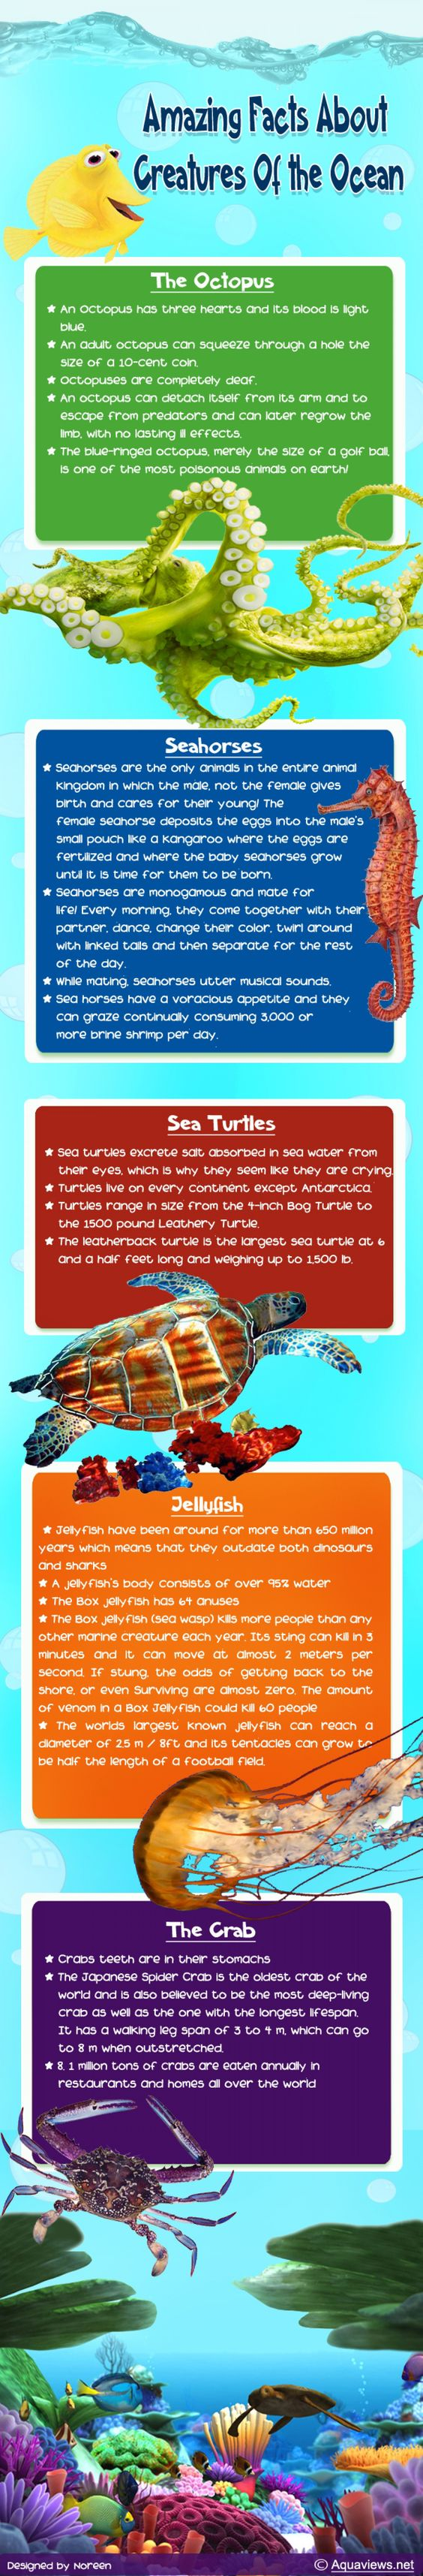 Amazing Facts About Creatures of the Ocean  Infographic